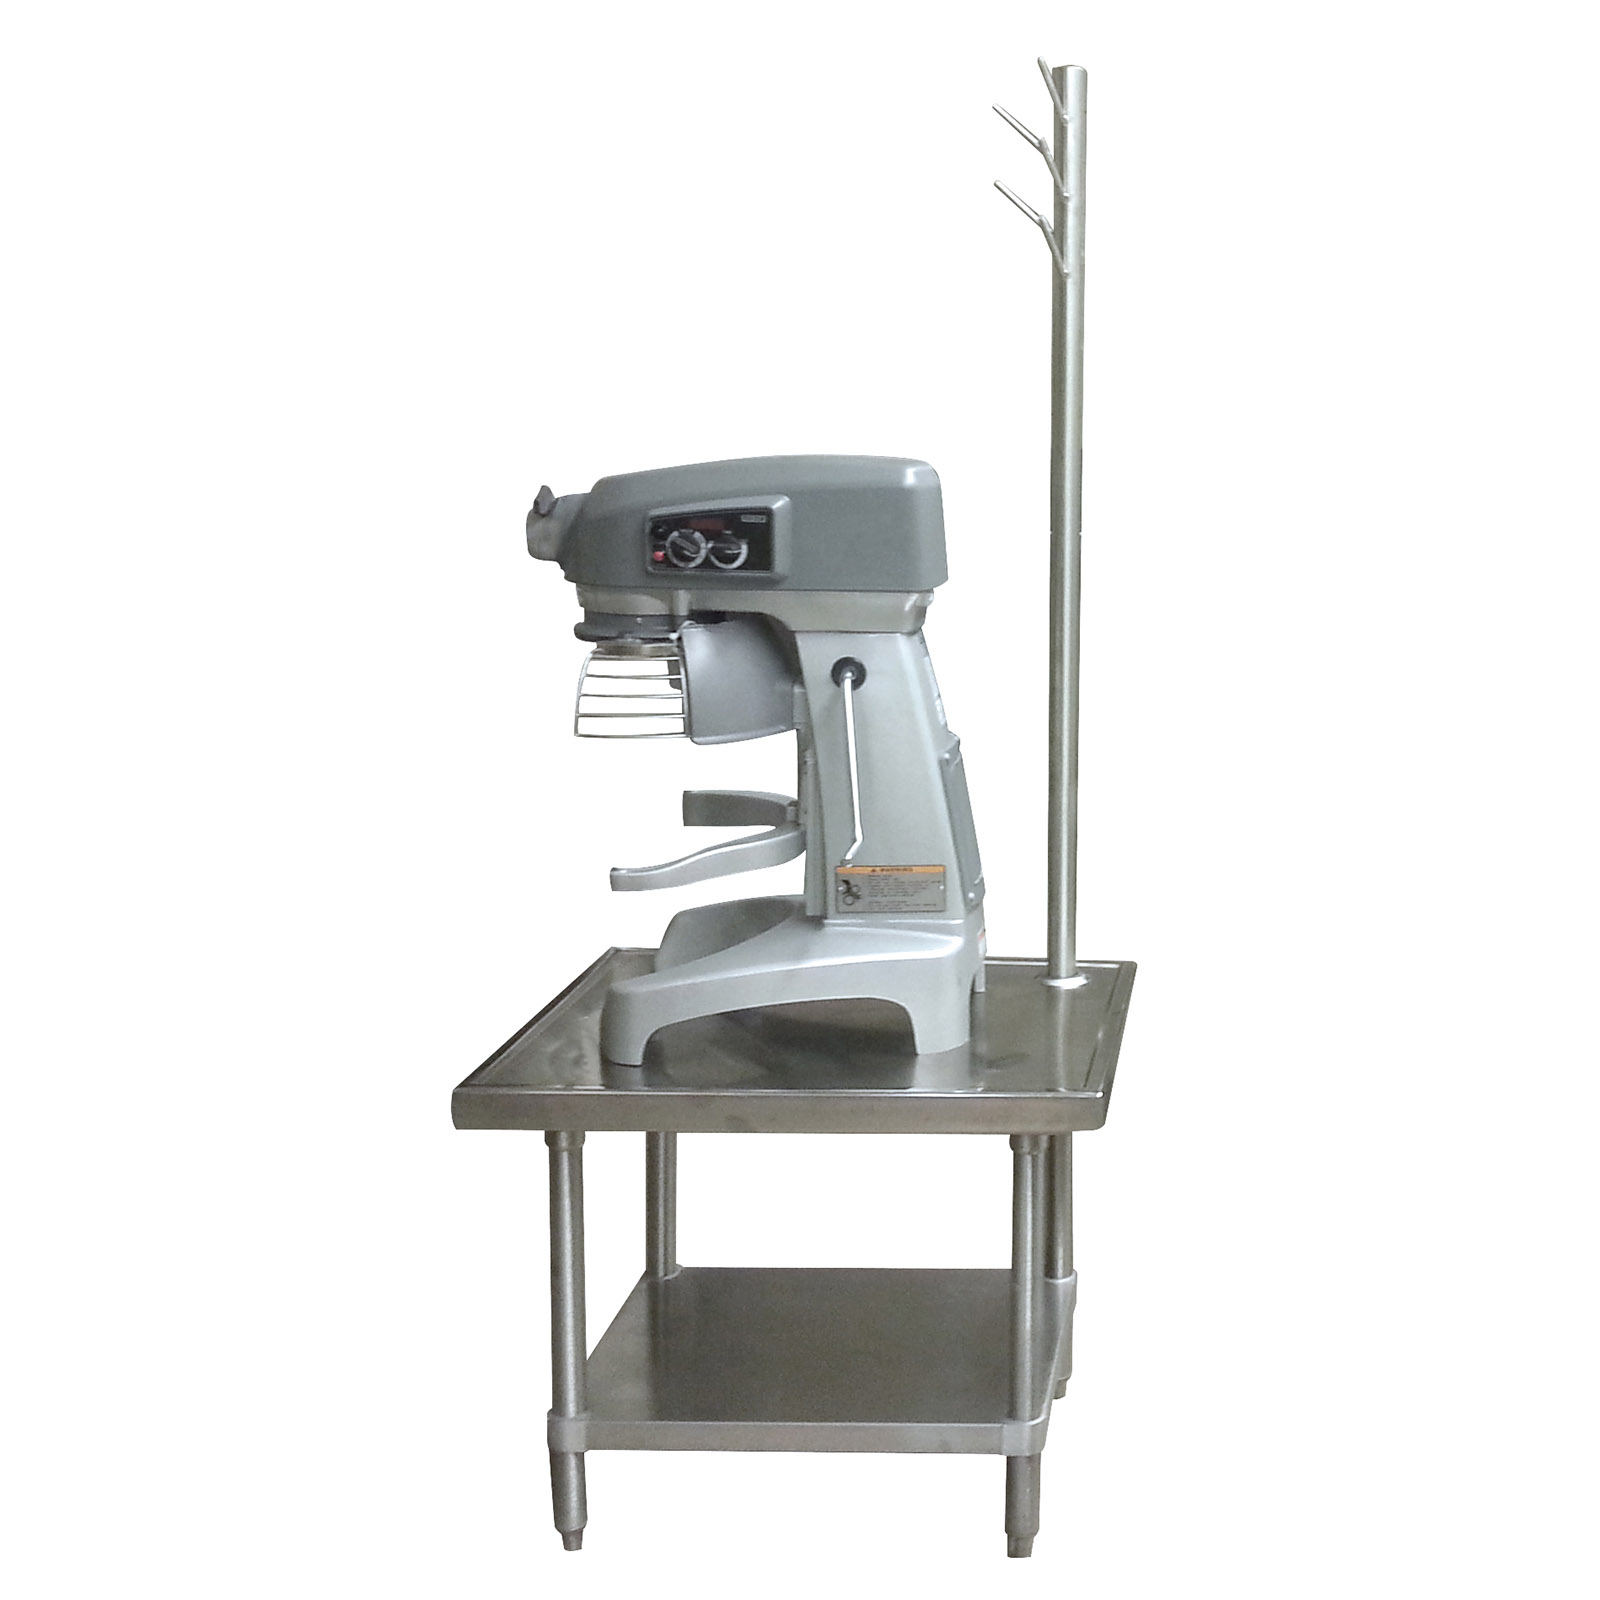 Advance Tabco MX-SS-302 equipment stand, for mixer / slicer